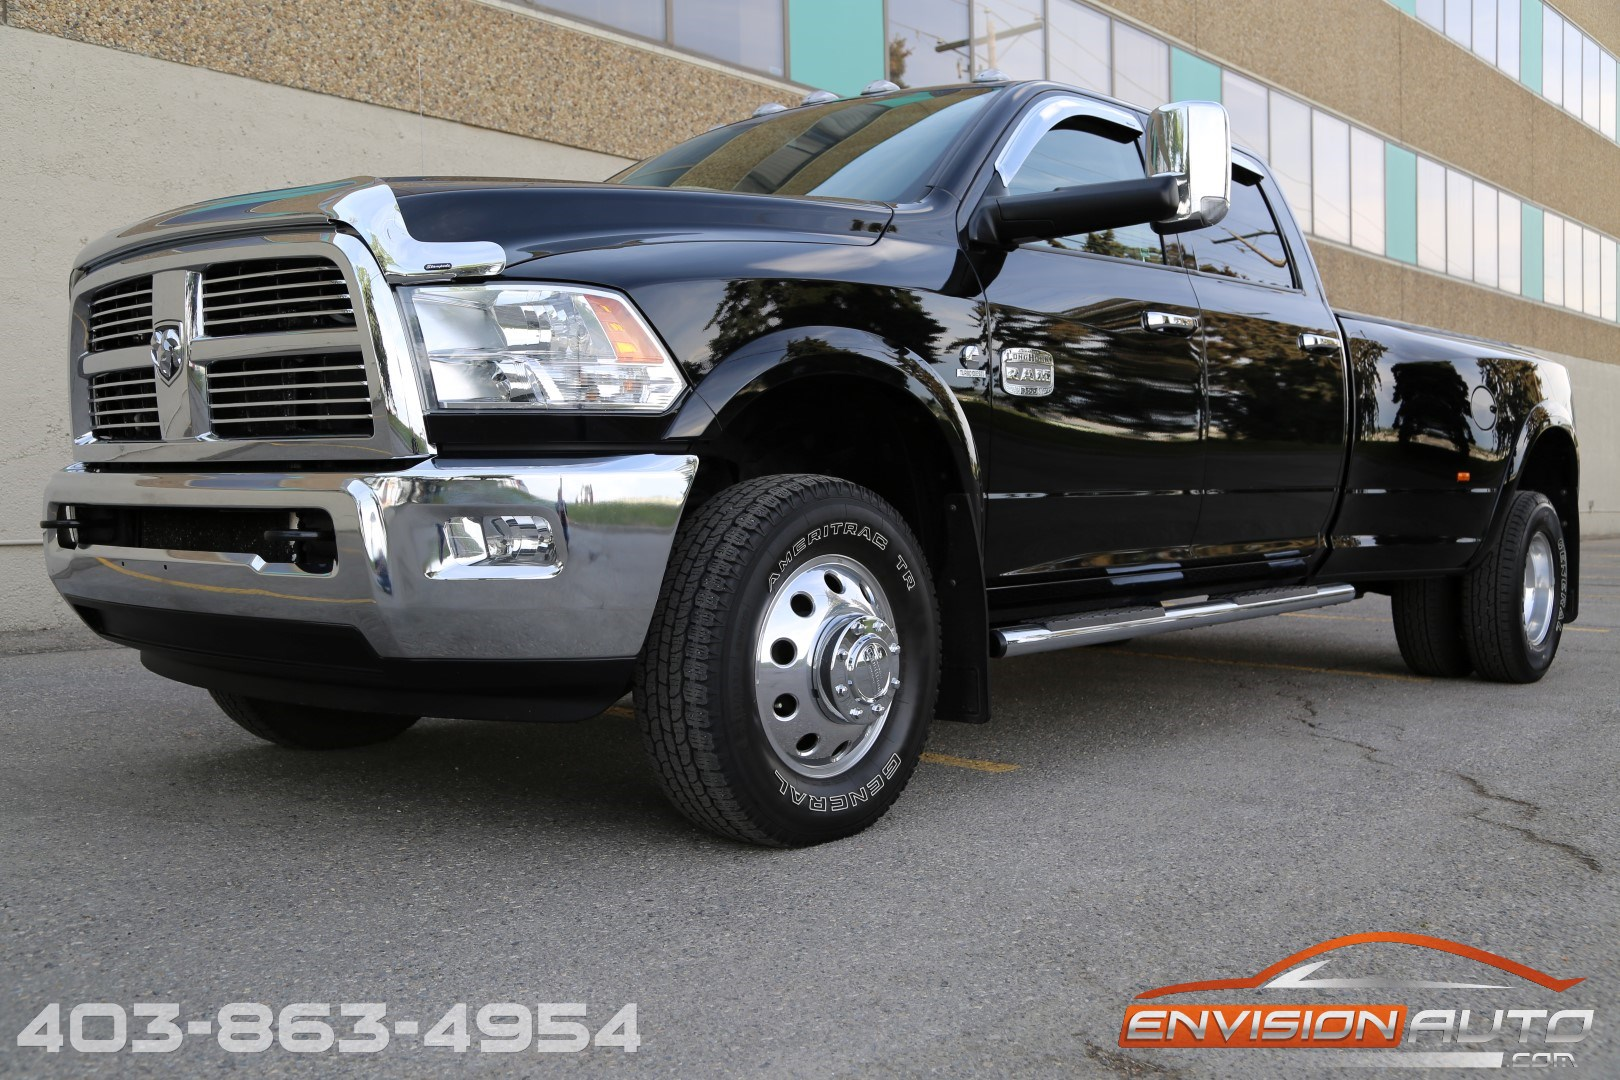 2012 dodge ram 3500 longhorn crew dually 4 4 fifth wheel aux fuel tank envision auto. Black Bedroom Furniture Sets. Home Design Ideas